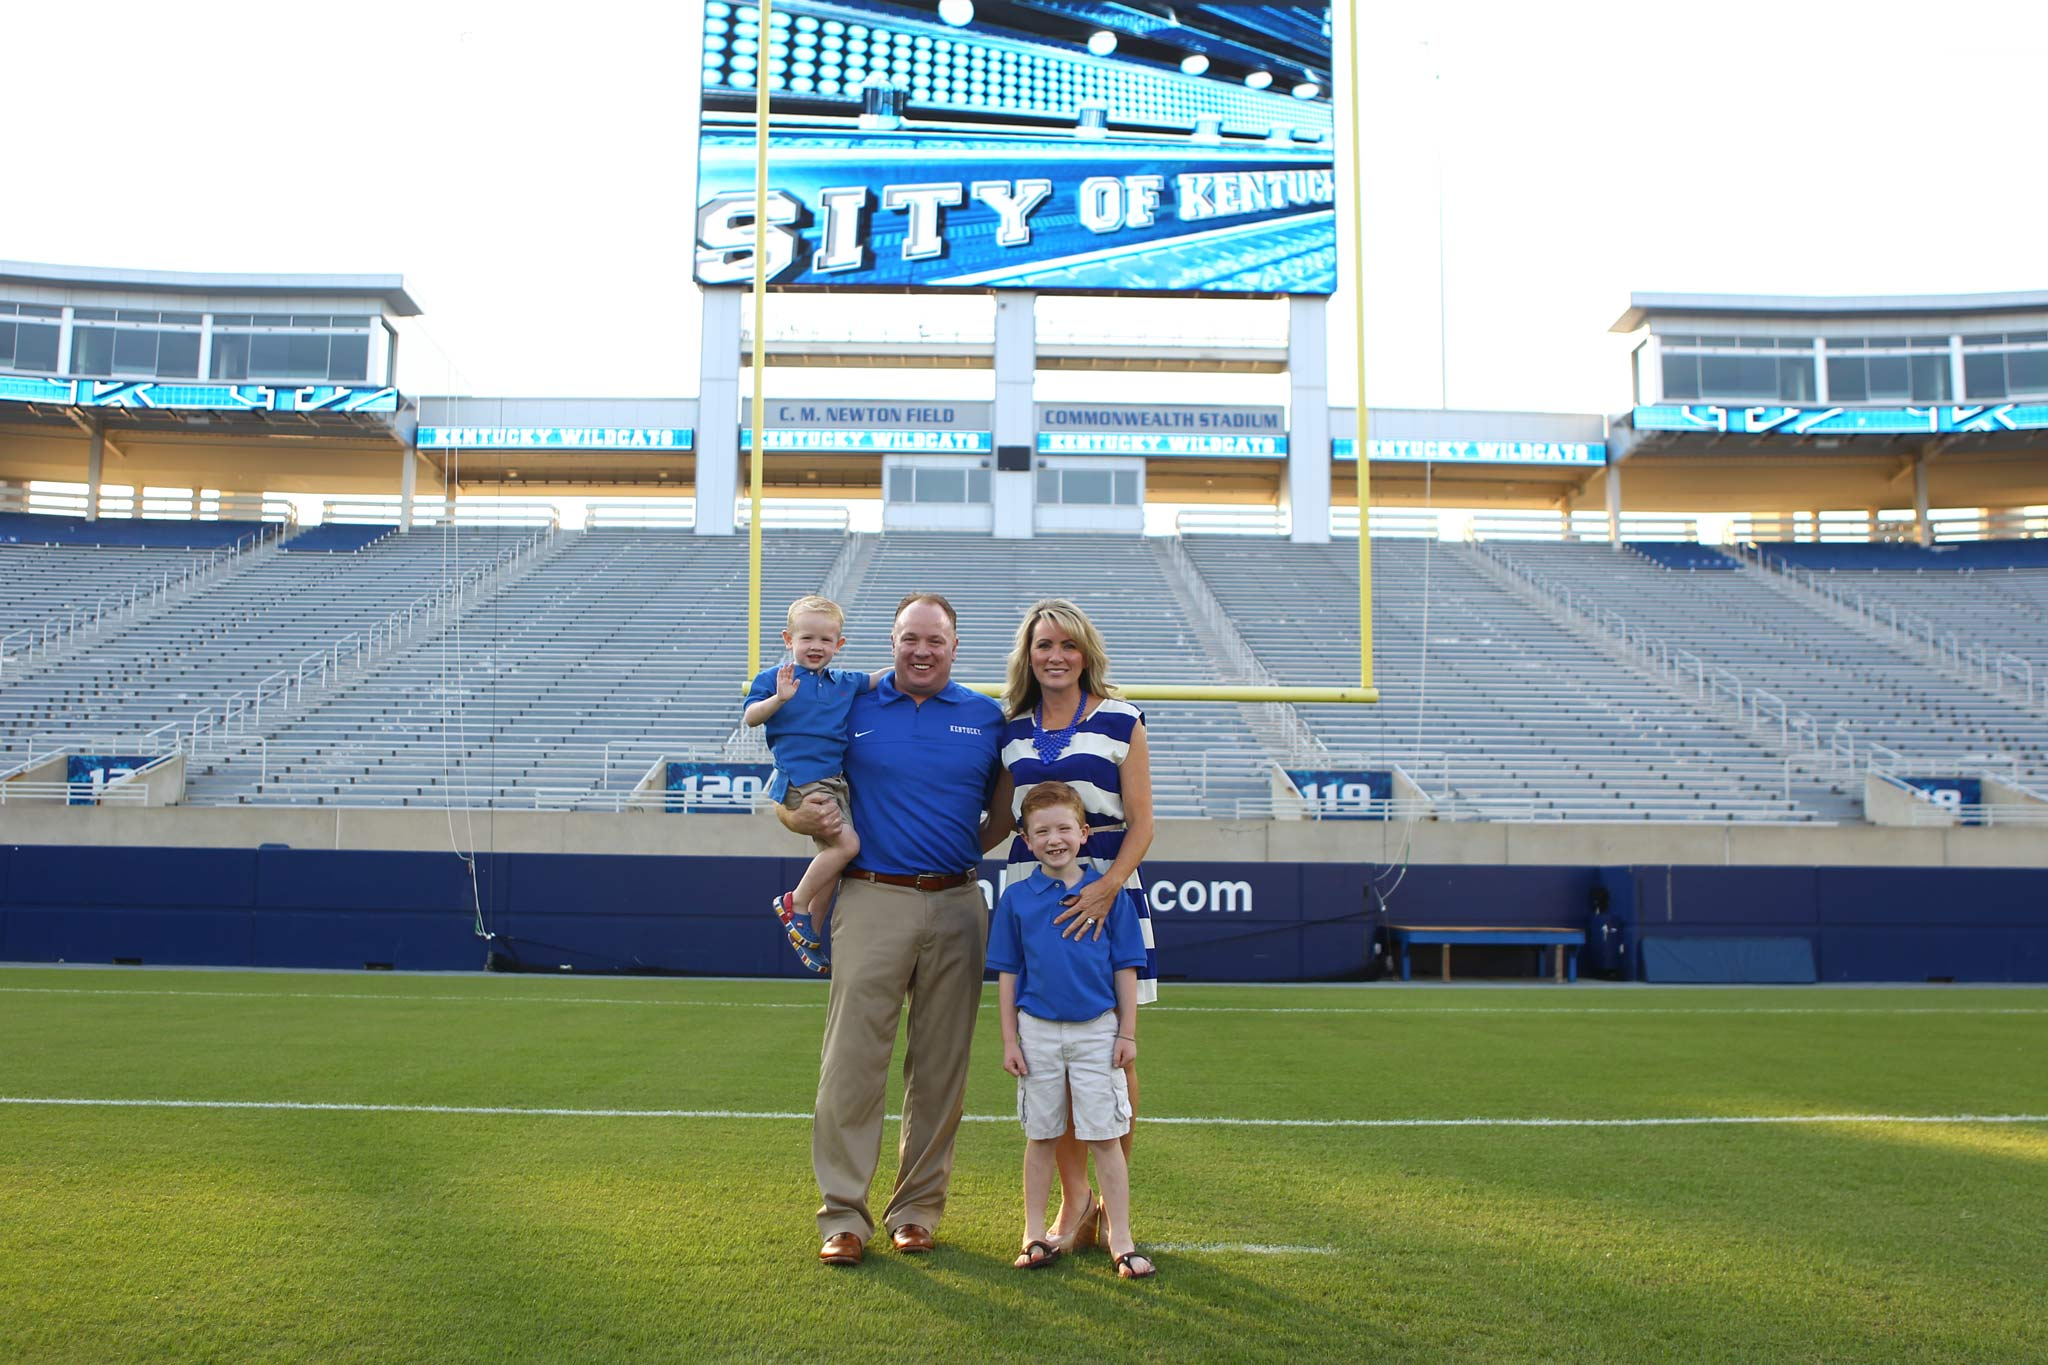 Coach Stoops stands with his wife and sons in front of the goal at Kroger Field. They are all wearing blue.